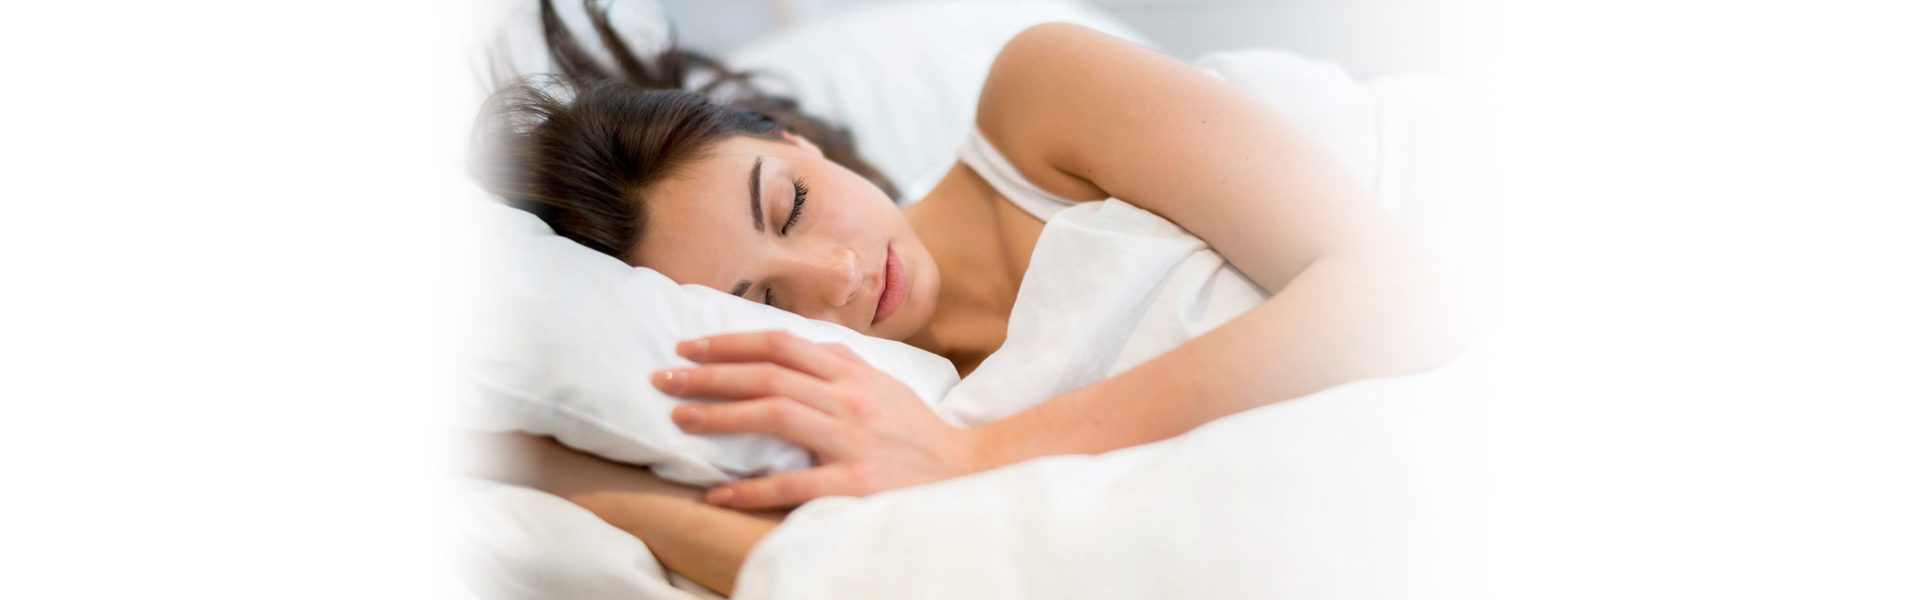 5 Alternative Sleep Apnea Treatment Options